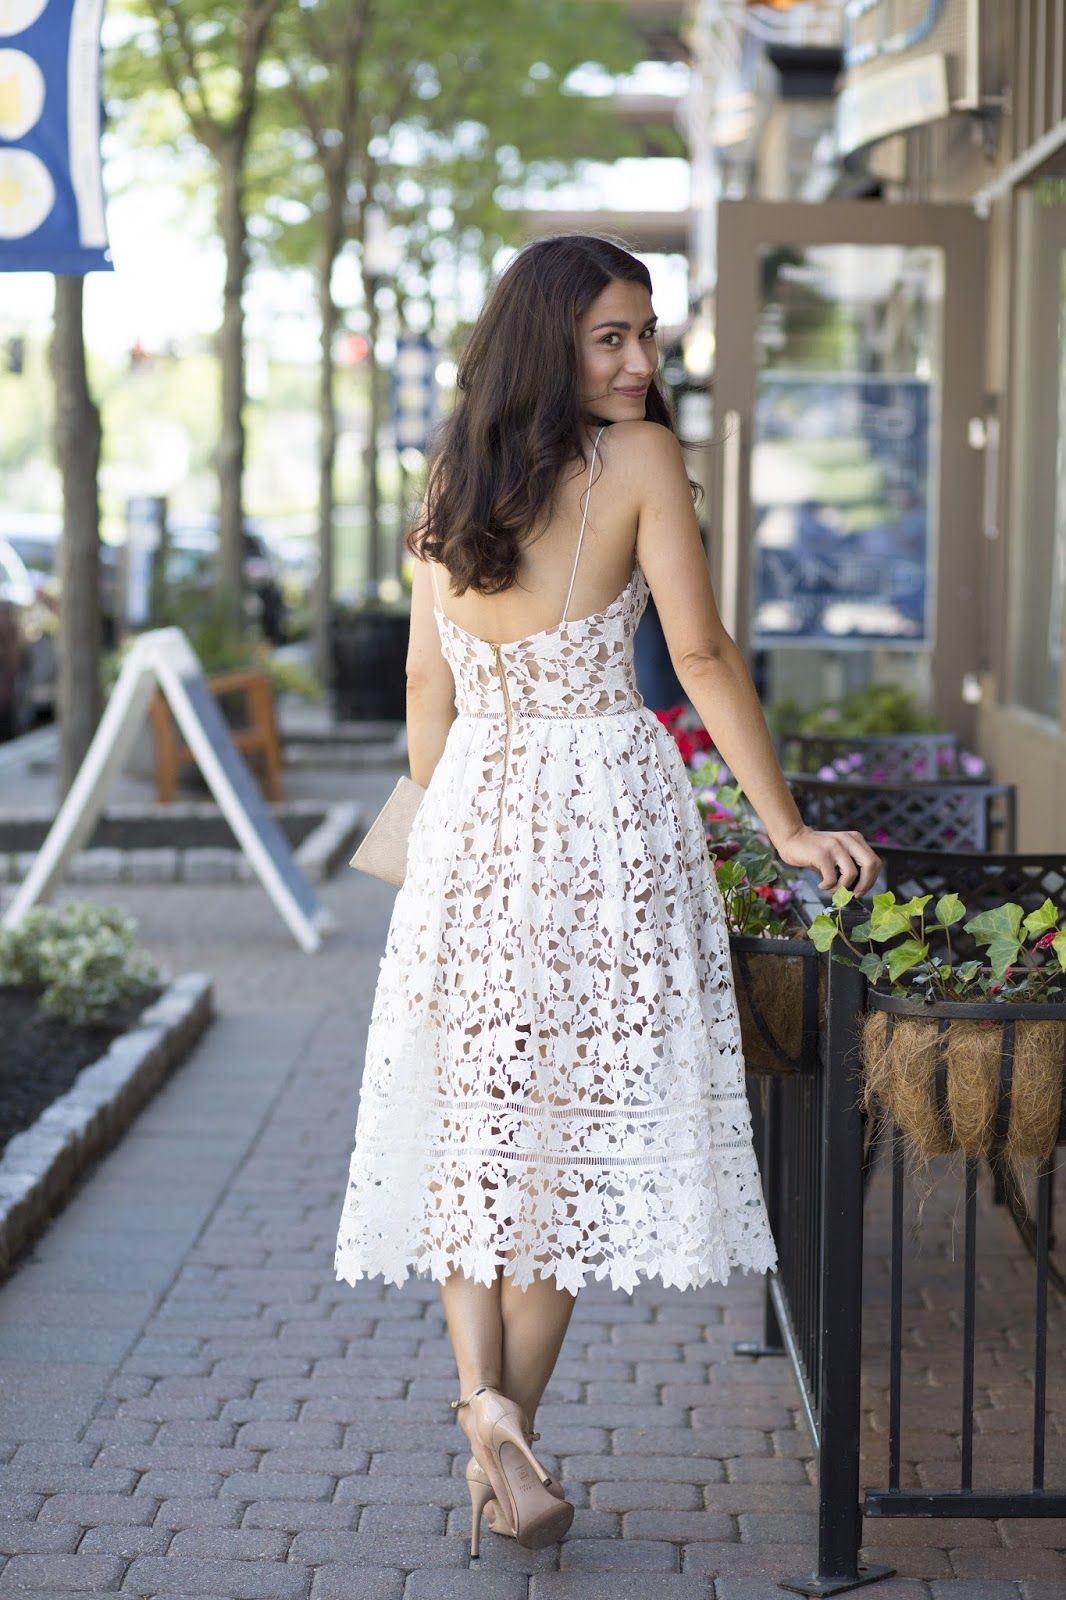 Summer Outfit Ideas White Lace Dress Bridal Shower Outfit Bridal Outfits Bridal Party Shirts [ 1600 x 1066 Pixel ]